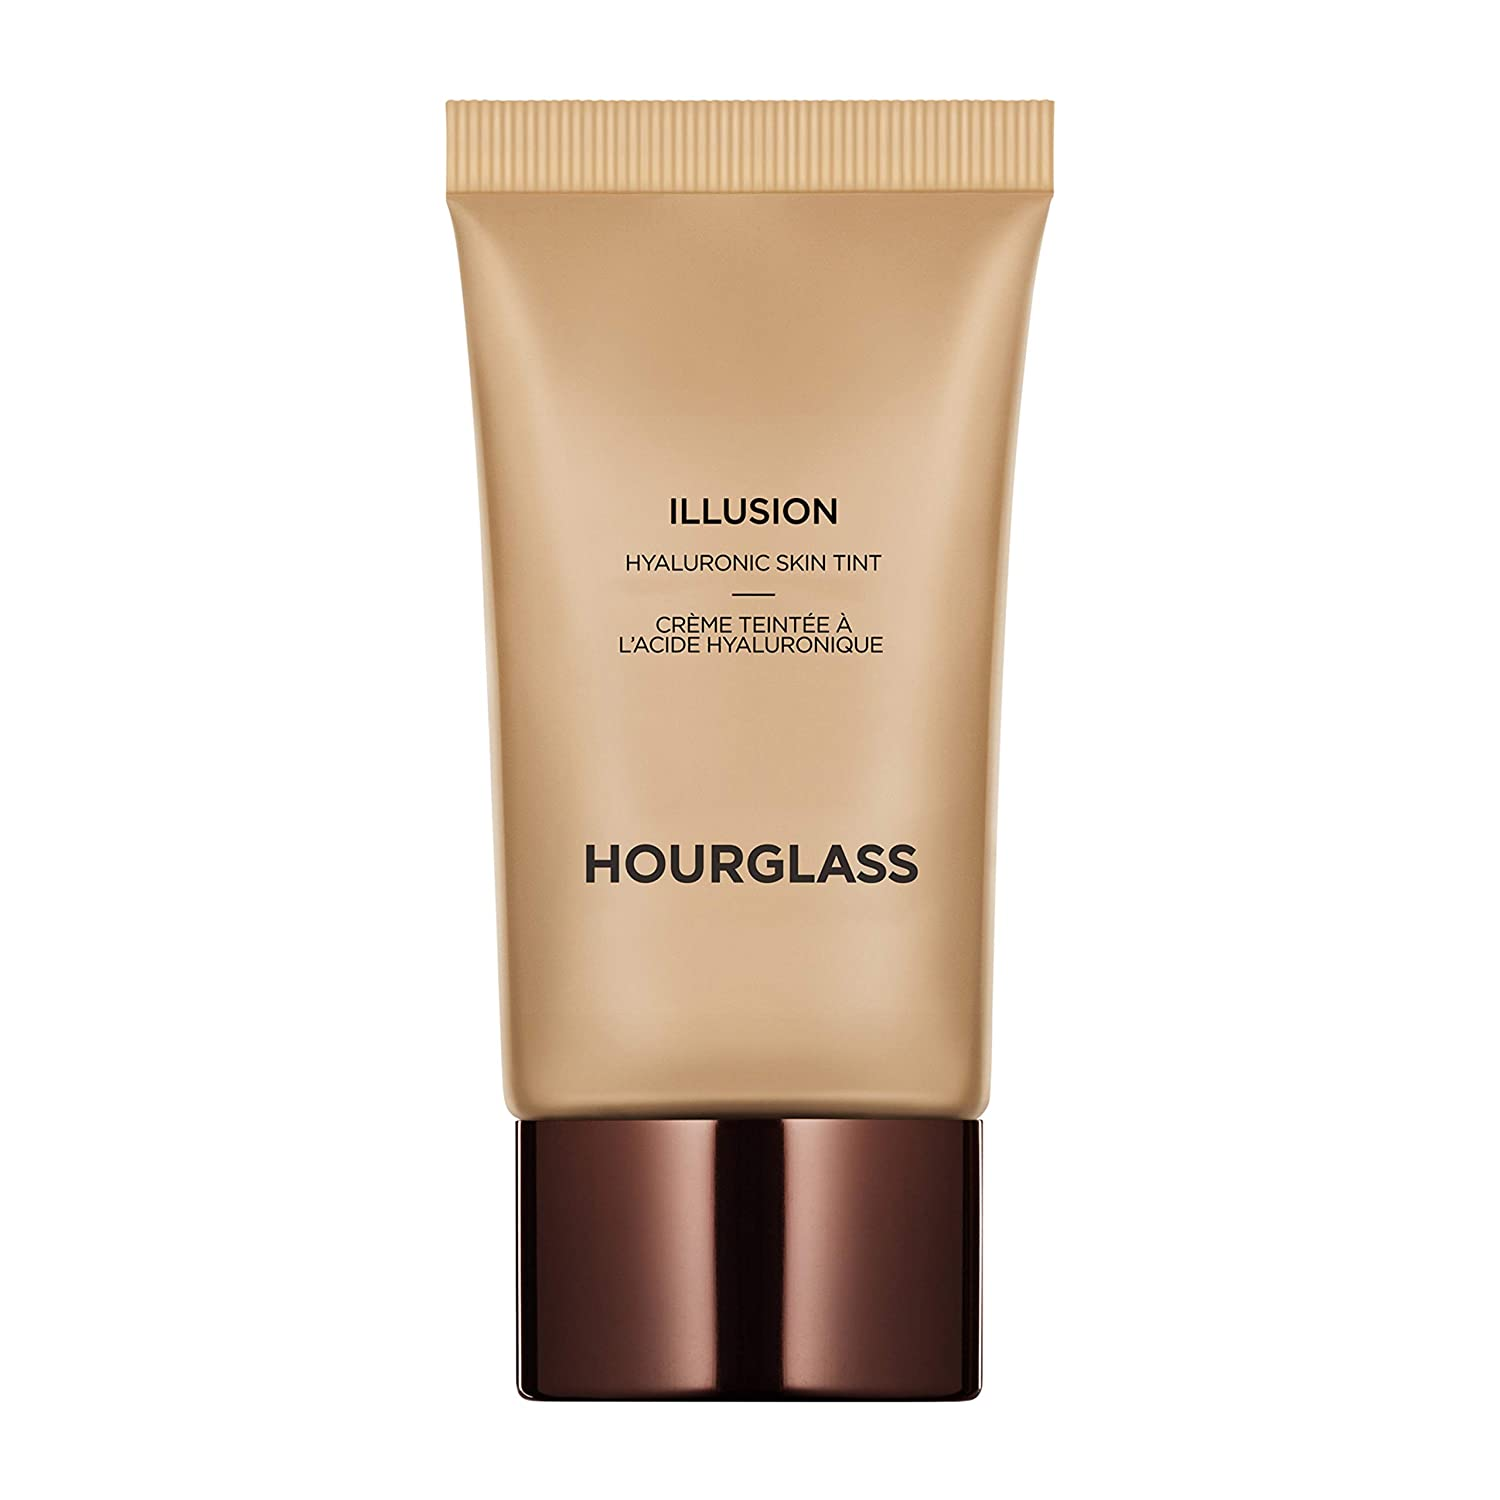 Hourglass Illusion Hyaluronic Skin Tint (Warm Ivory)